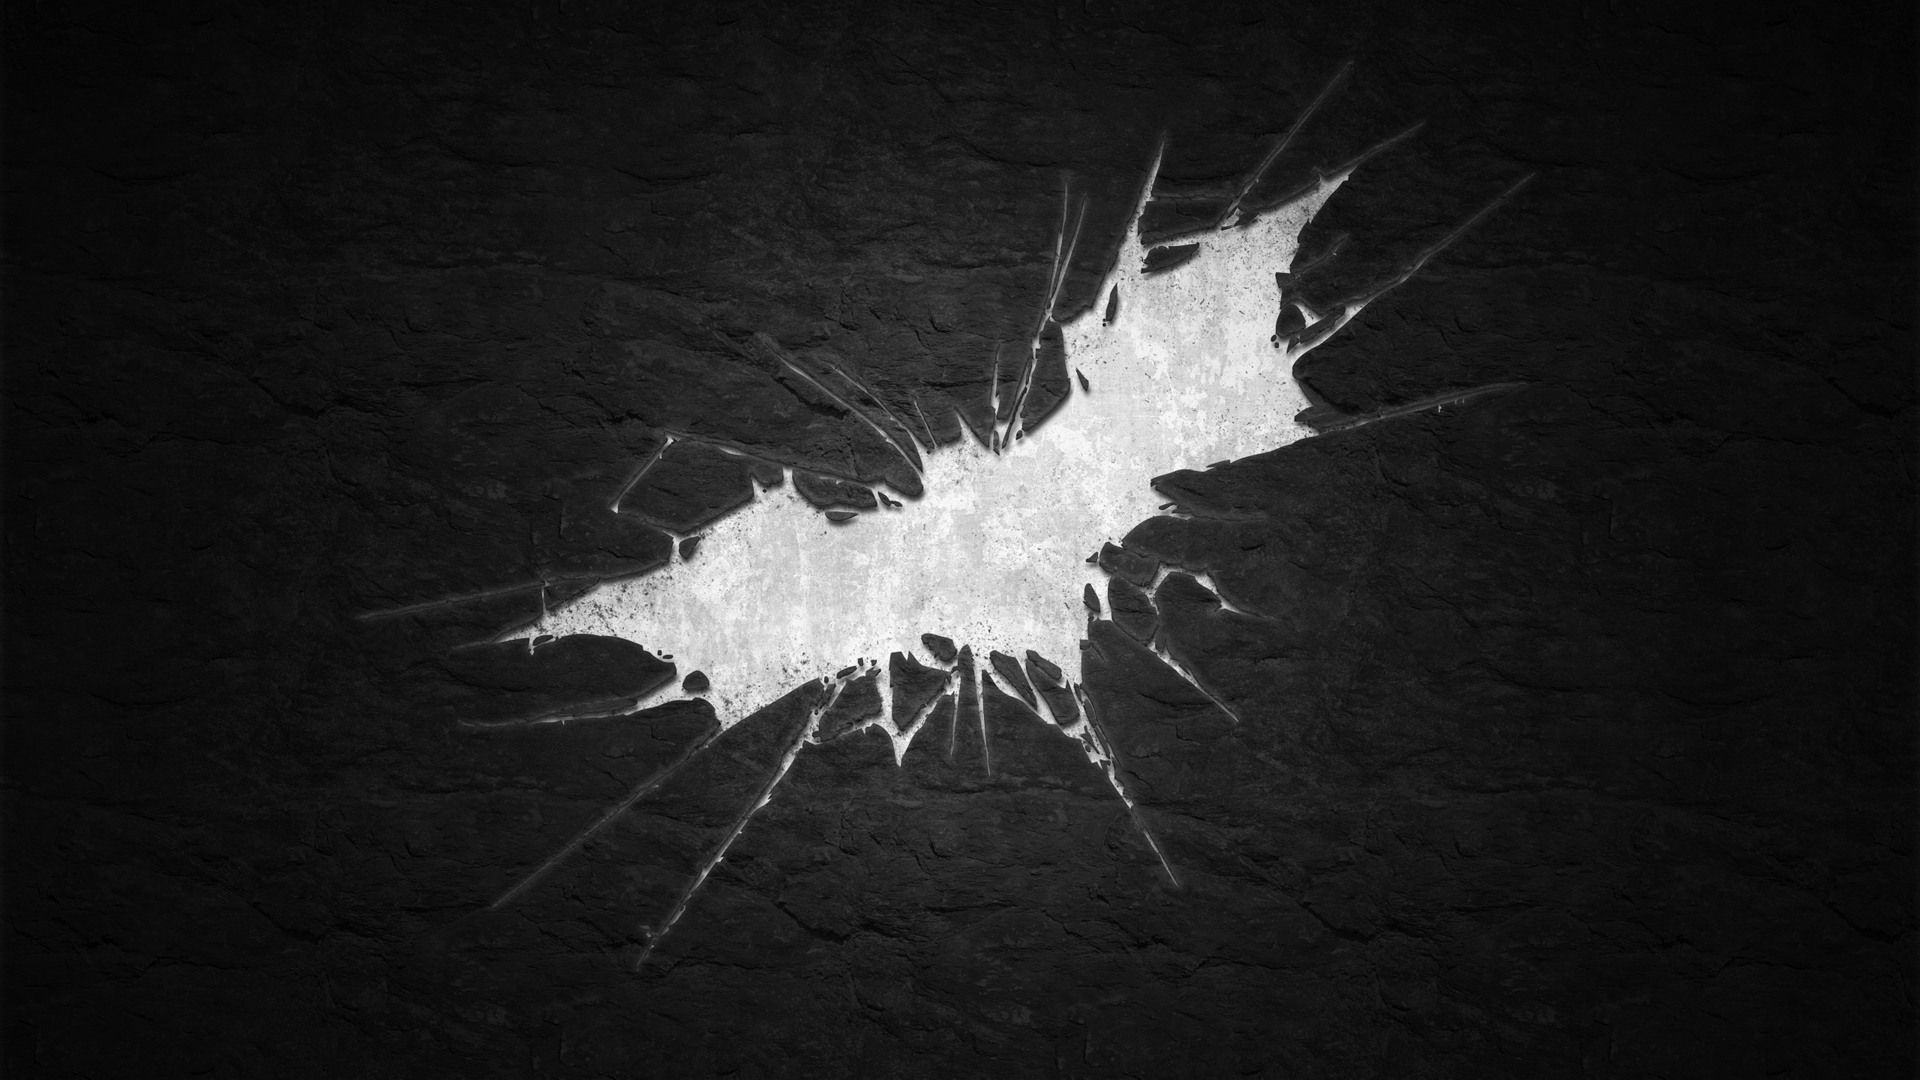 Batman: Shattered / the dark knight rises wallpaper | Black and